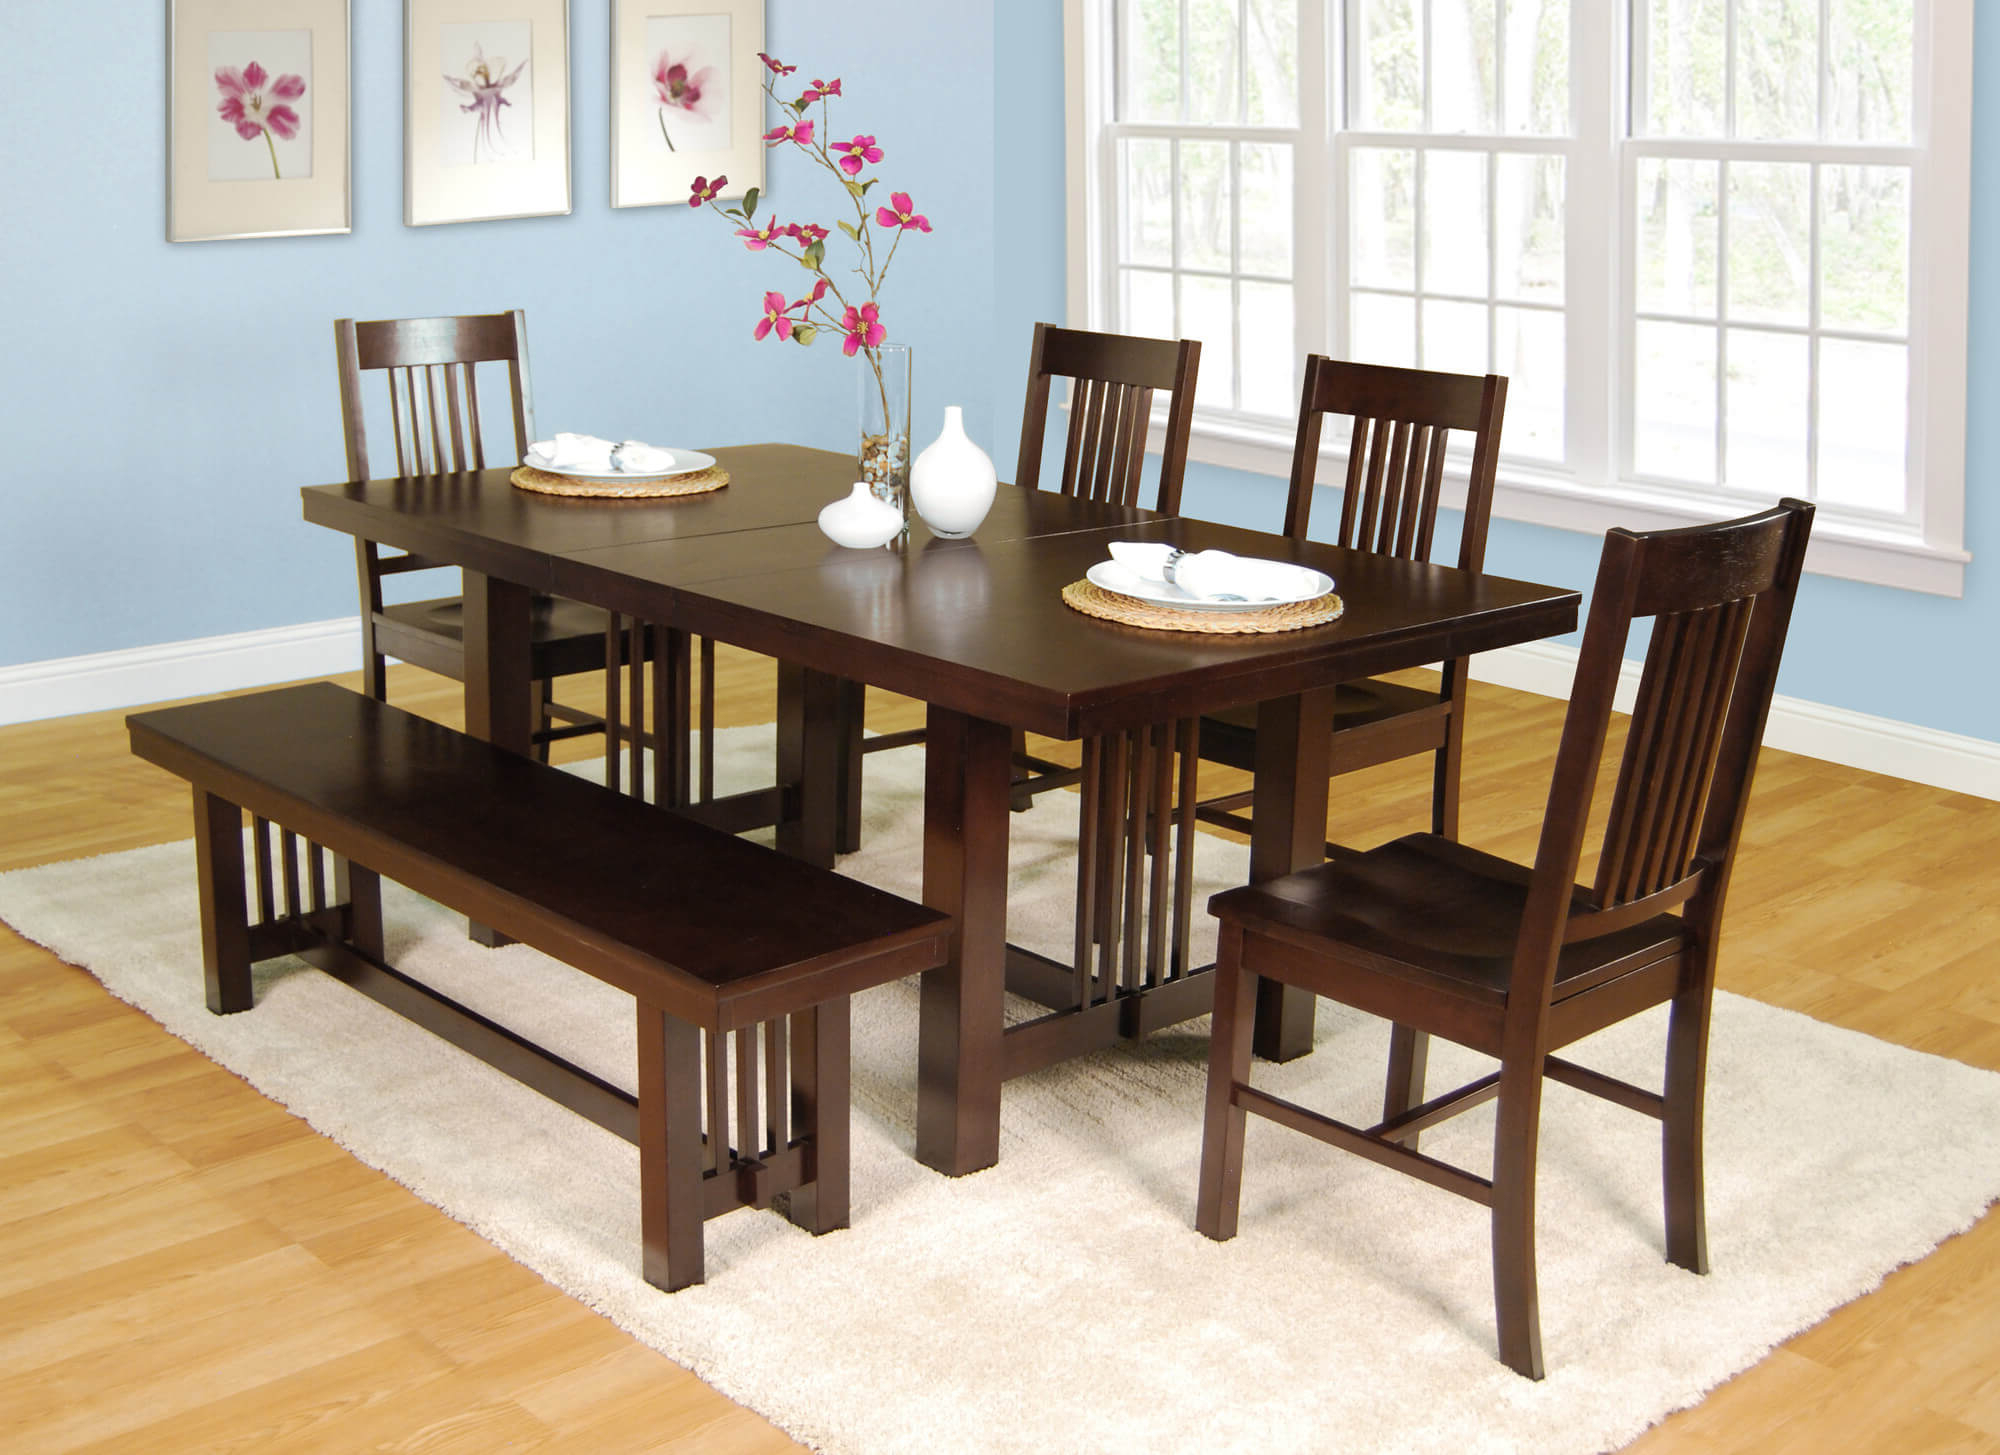 Preferred 10 Modern Walnut Finish Dining Room Table Set Furniture Throughout Large Rustic Look Dining Tables (View 13 of 30)